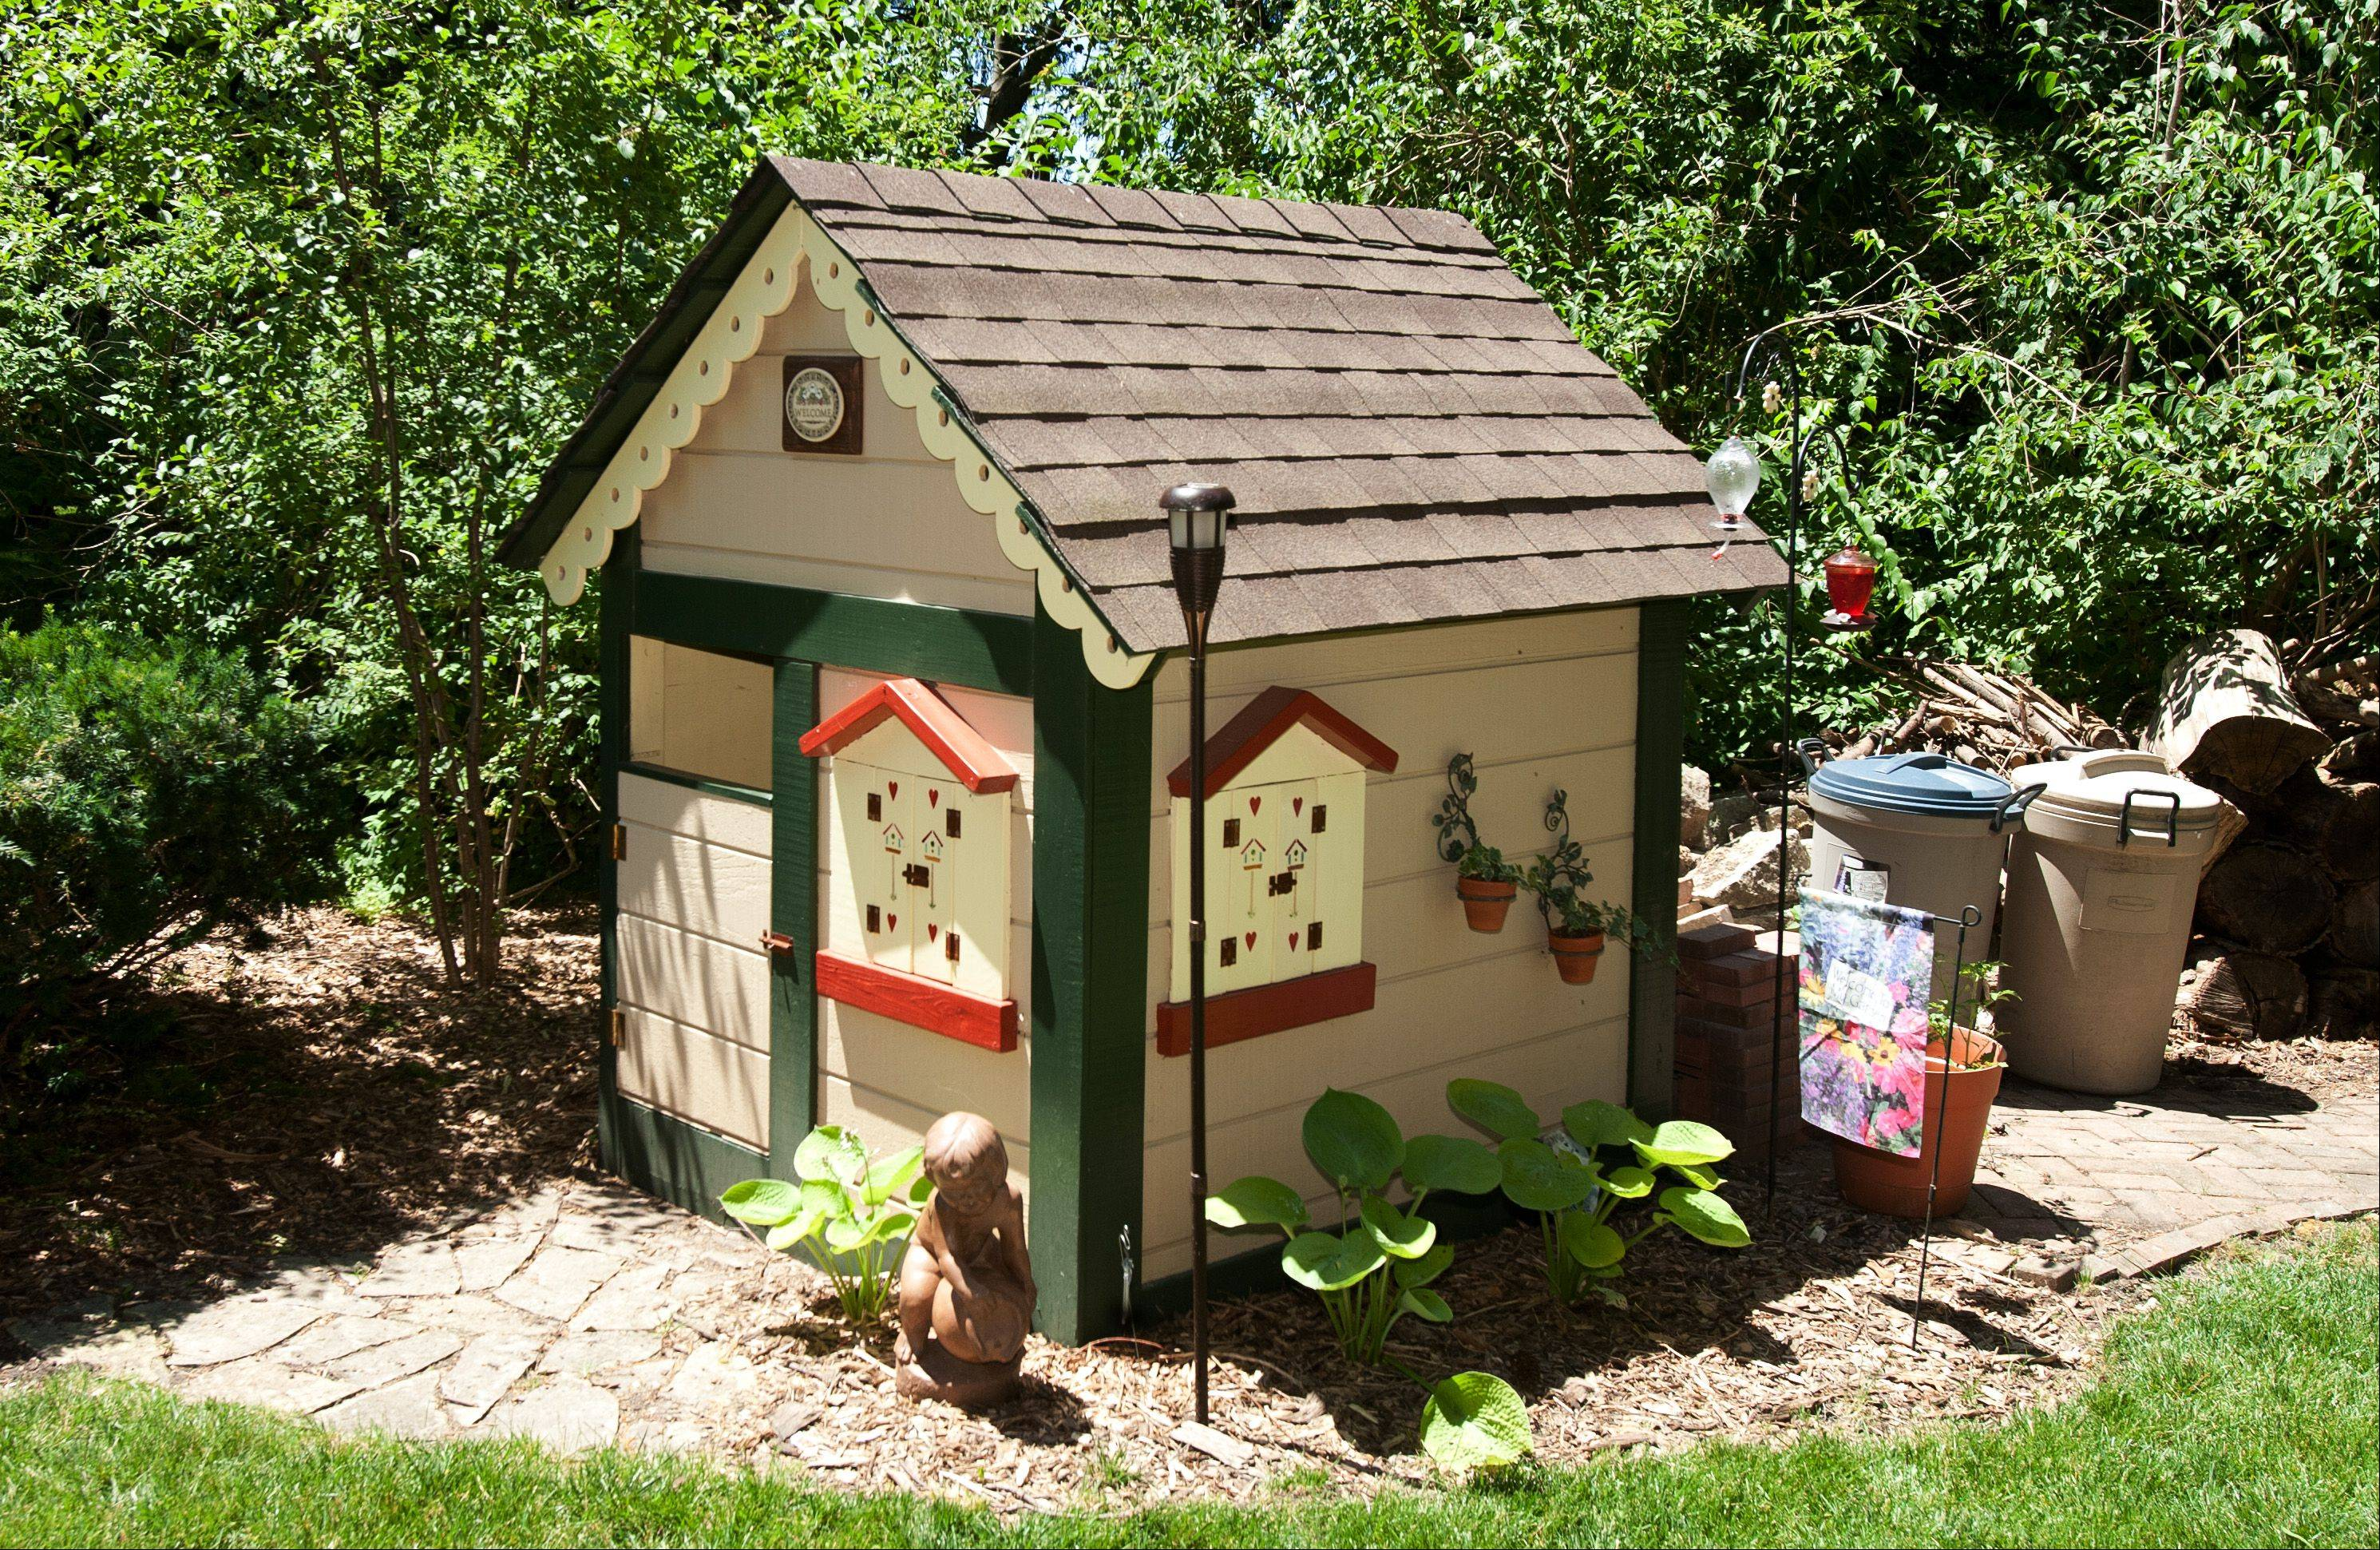 The backyard of Kathy and Gary Lenke is one stop on the Lisle Woman's Club's Garden Gait walk on Sunday, June 24. The couple converted their children's playhouse into a whimsical garden shed.